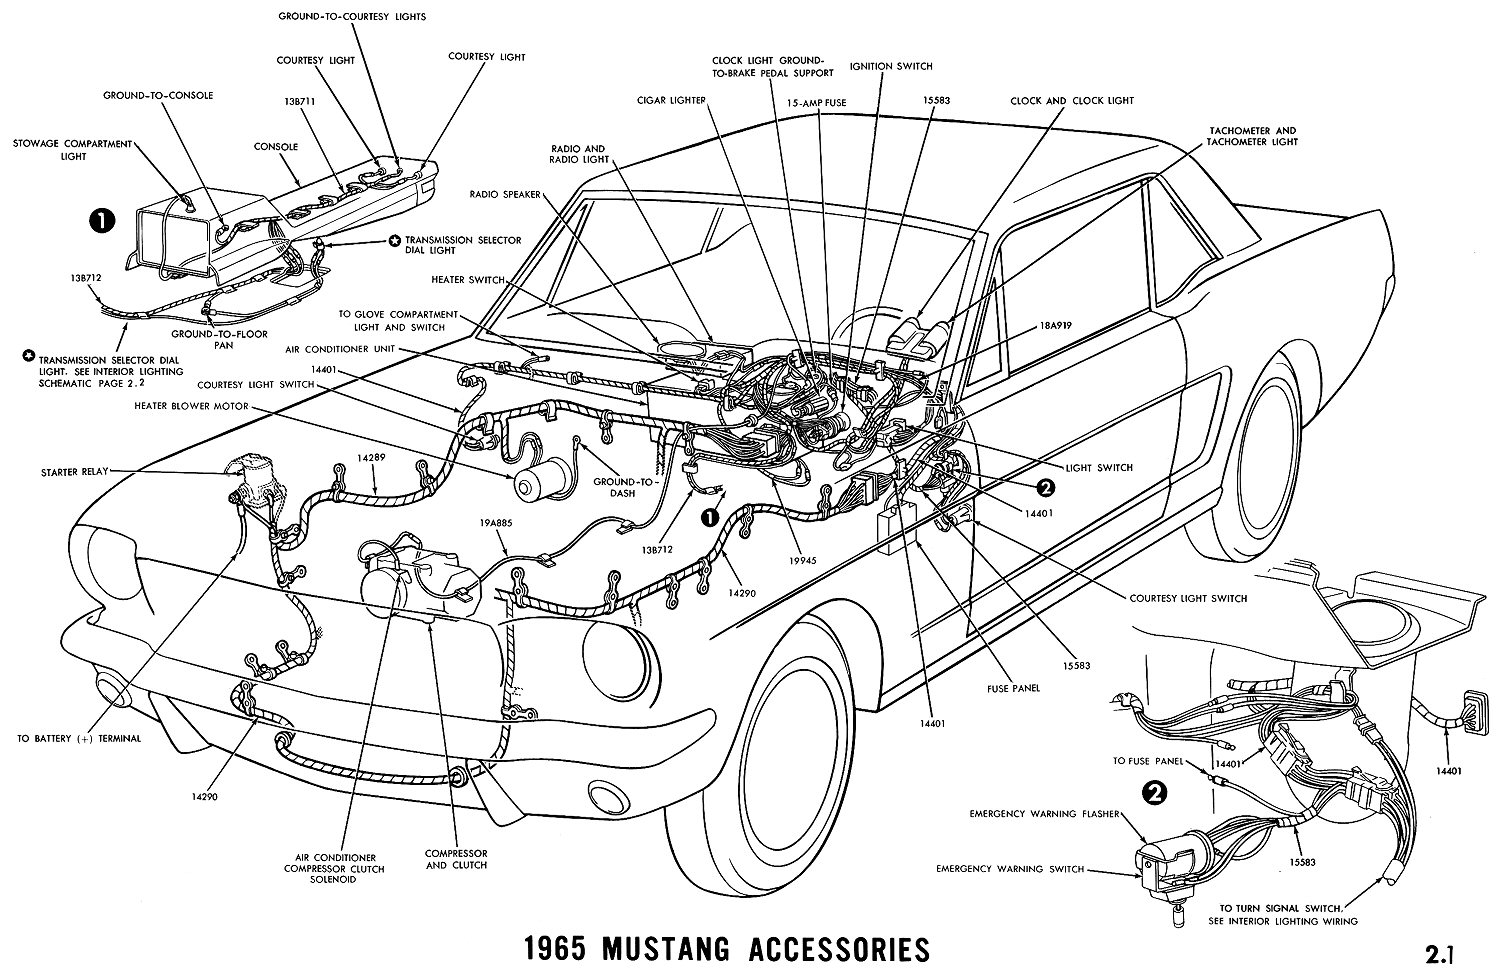 65 mustang accesories 1965 mustang accesories diagram fox body fuse box location at bakdesigns.co